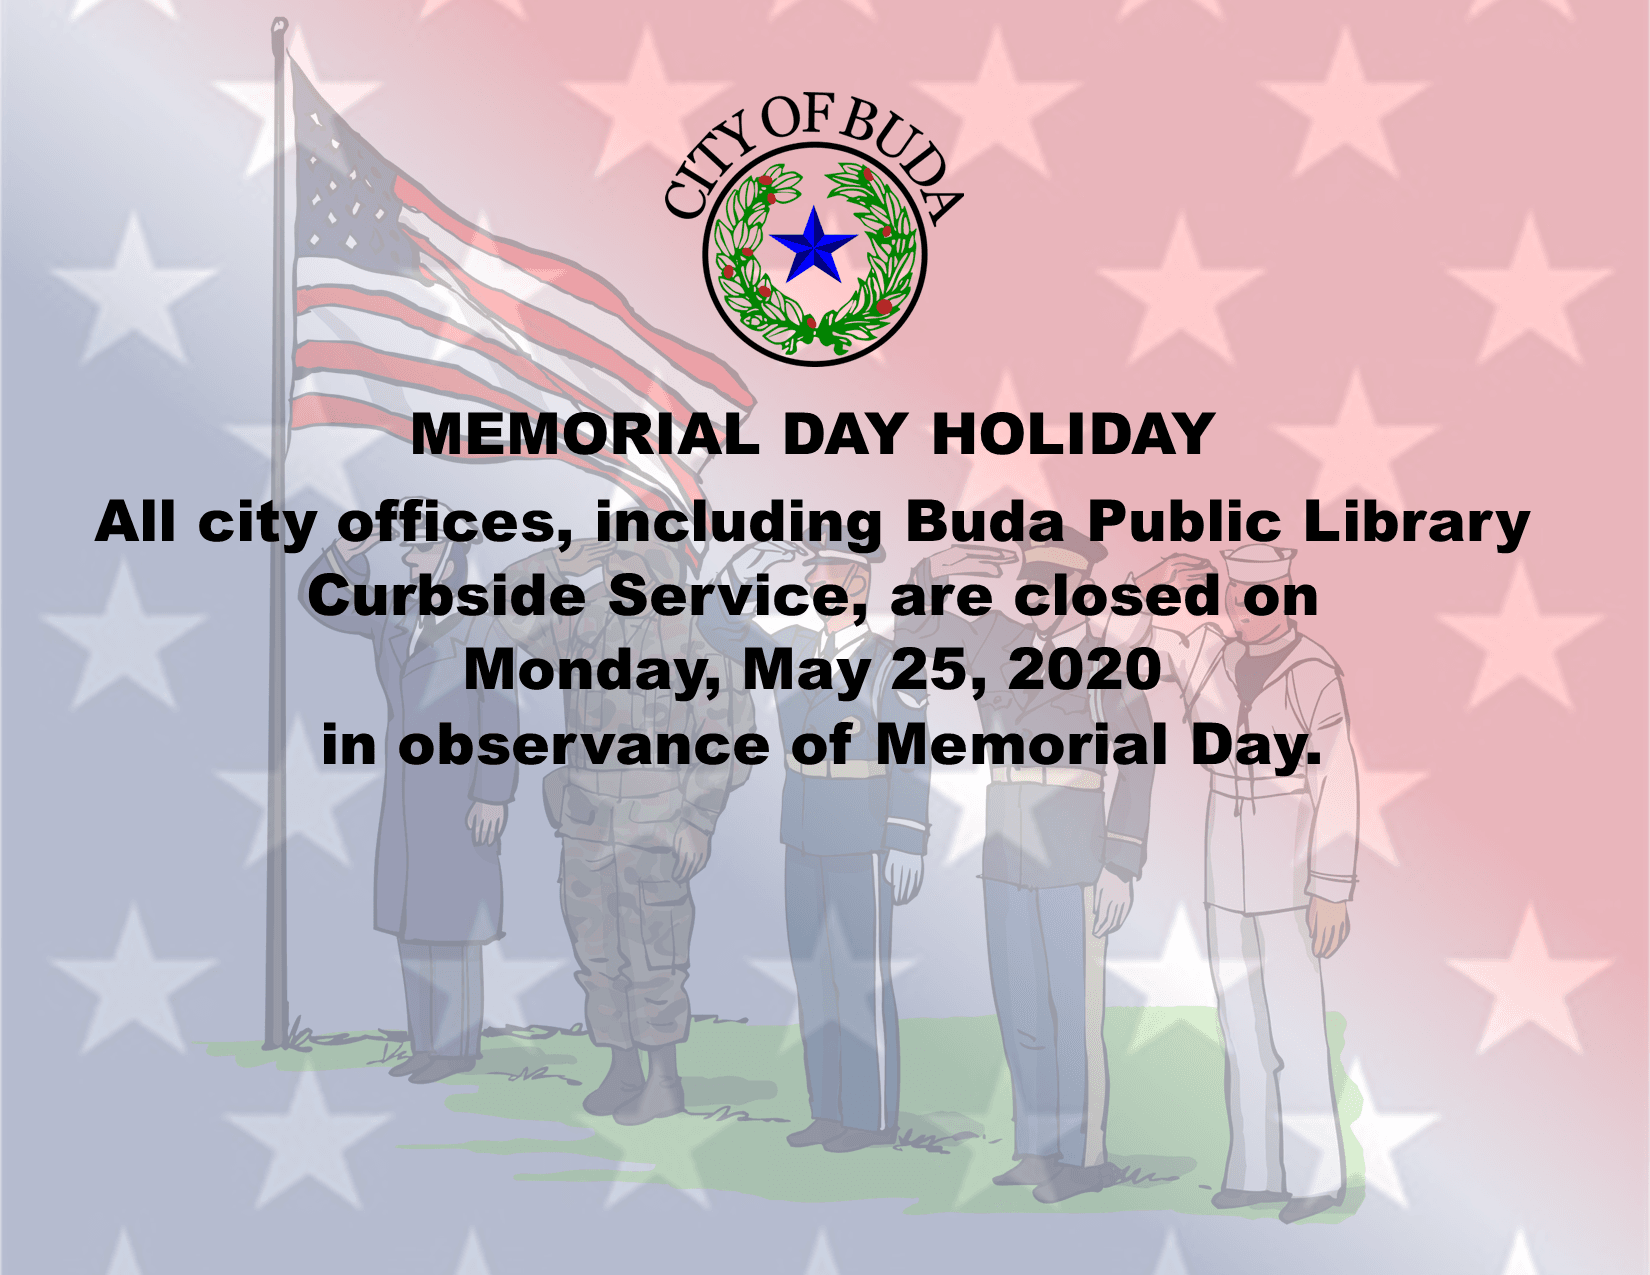 Memorial Day Holiday 2020